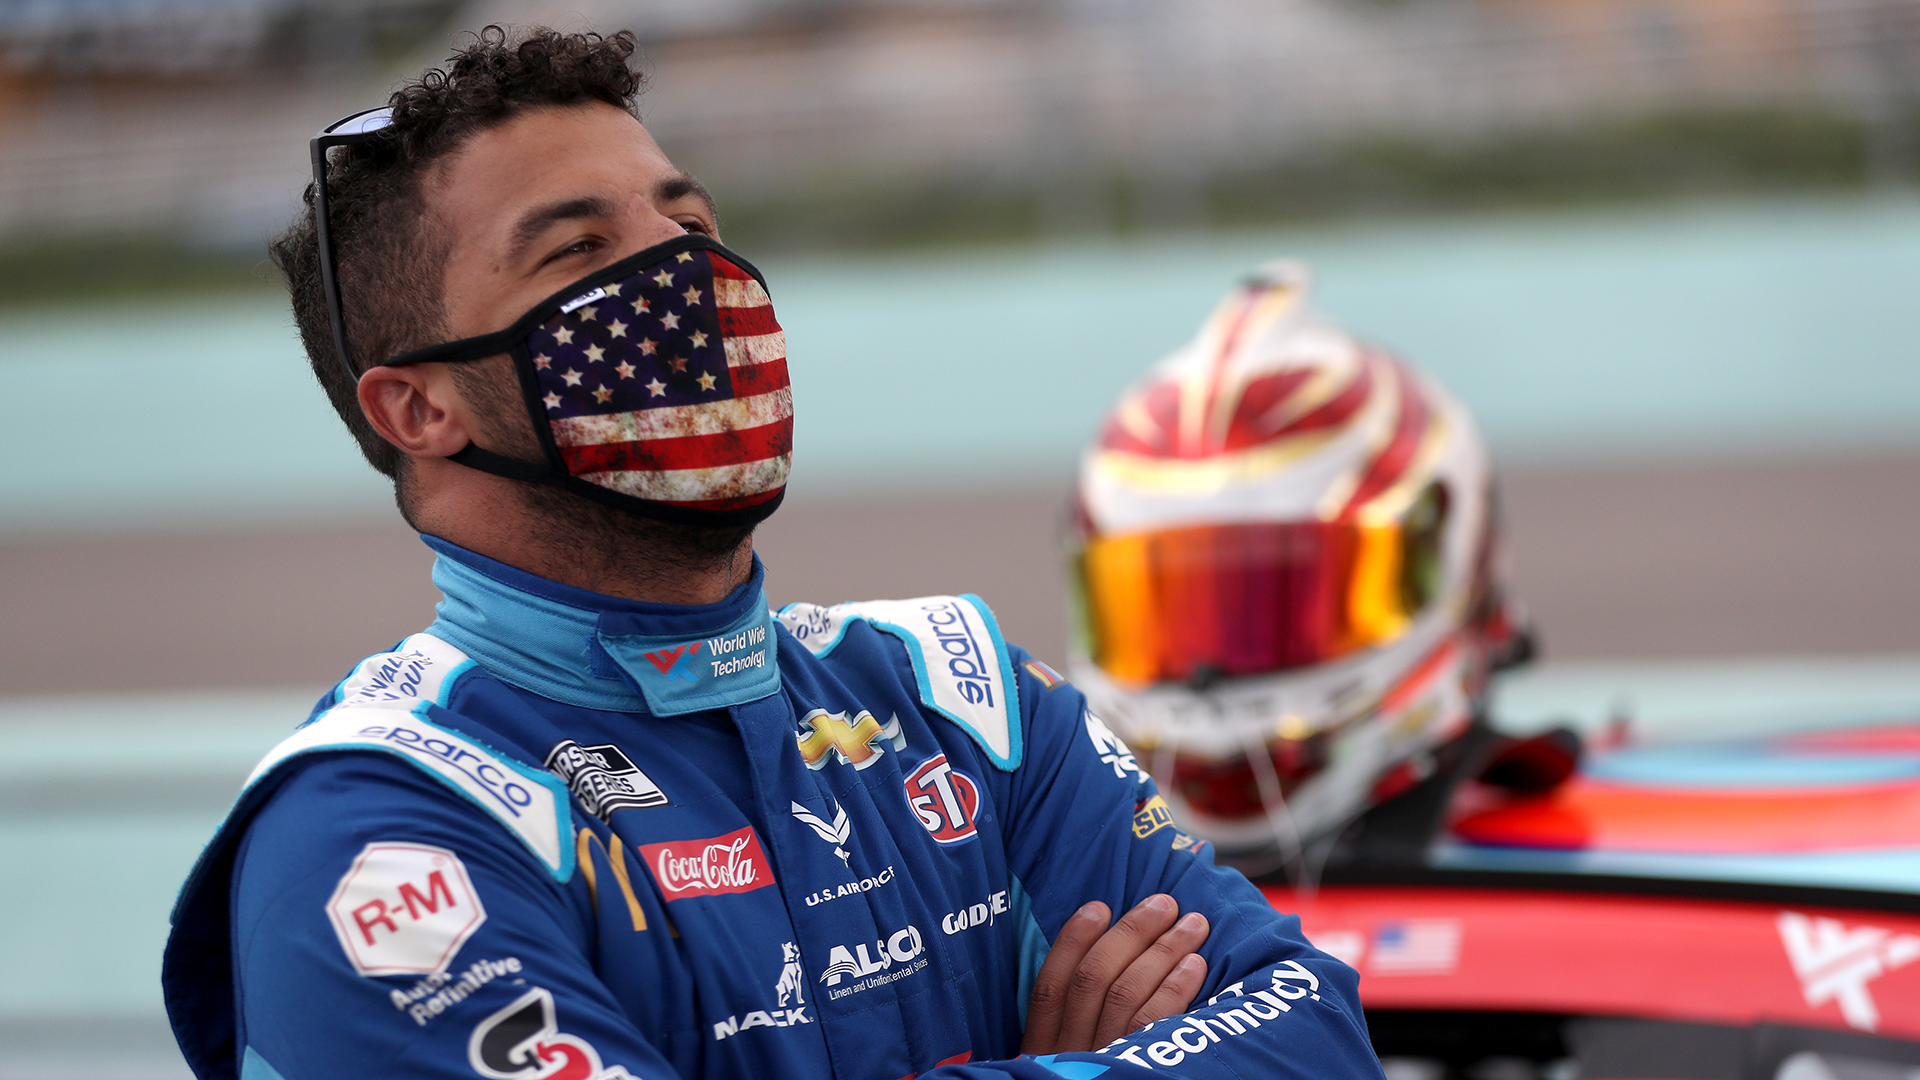 Mike Skinner's son said Bubba Wallace should've been dragged 'around the pits' with noose